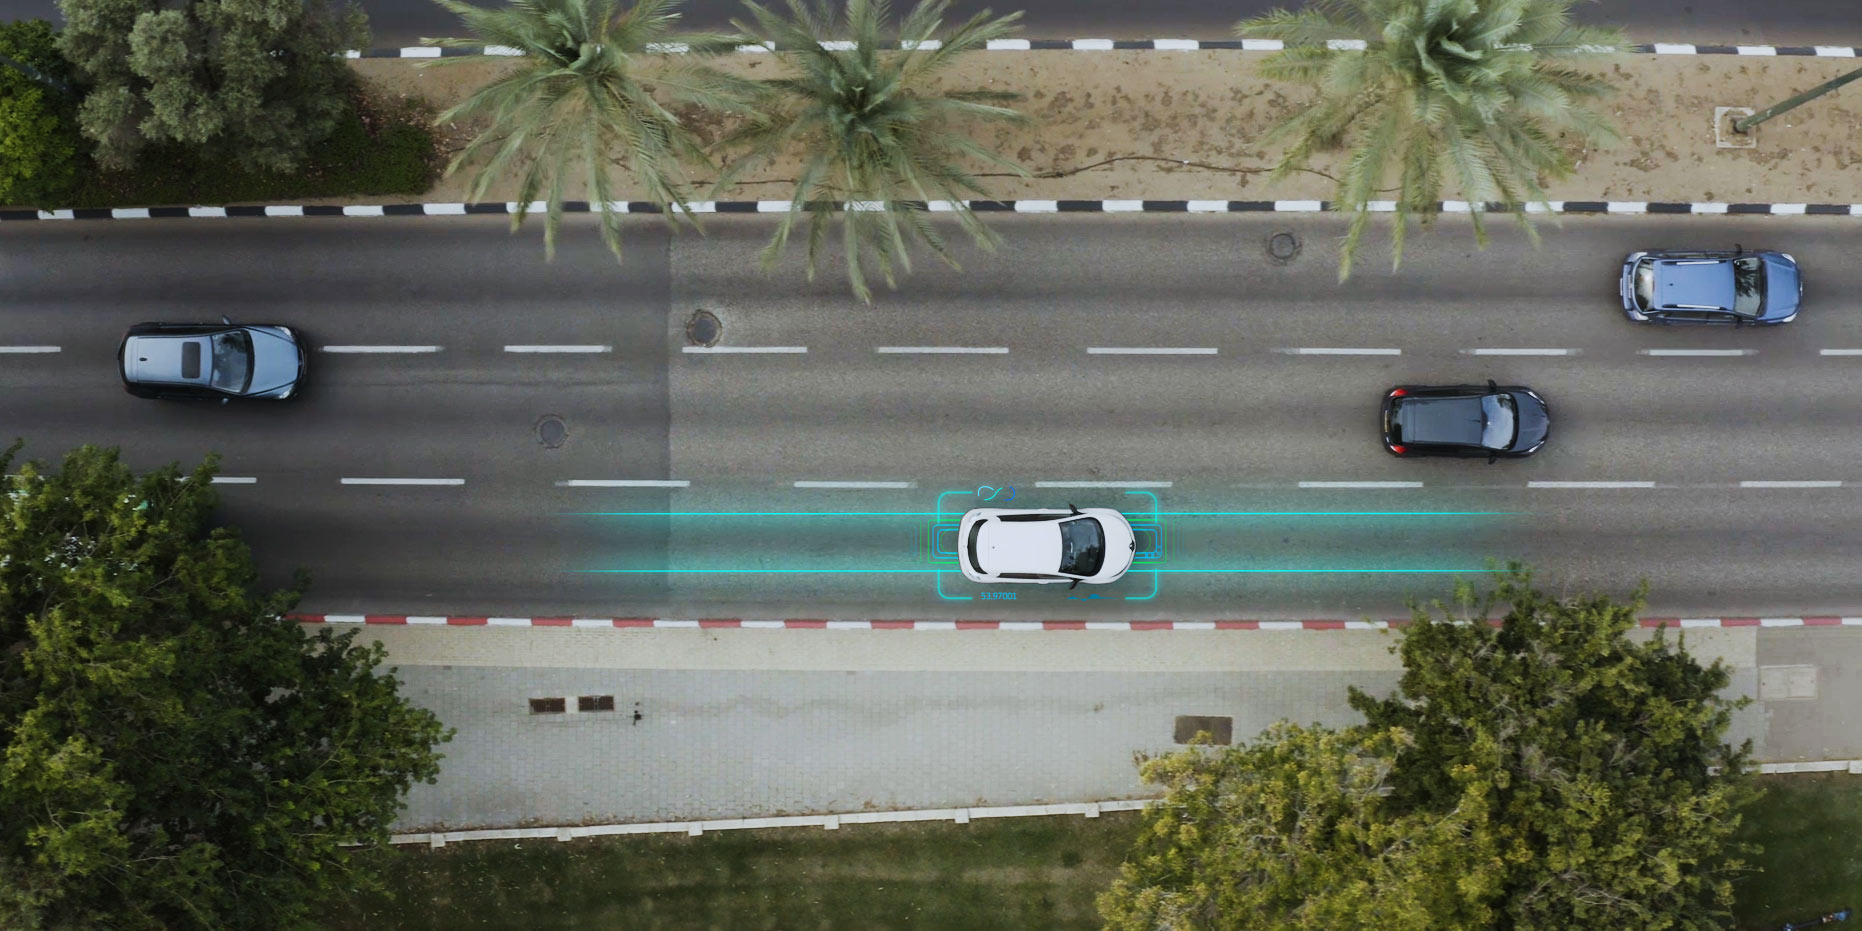 Israeli start-up wants to electrify roads that charge your car while driving